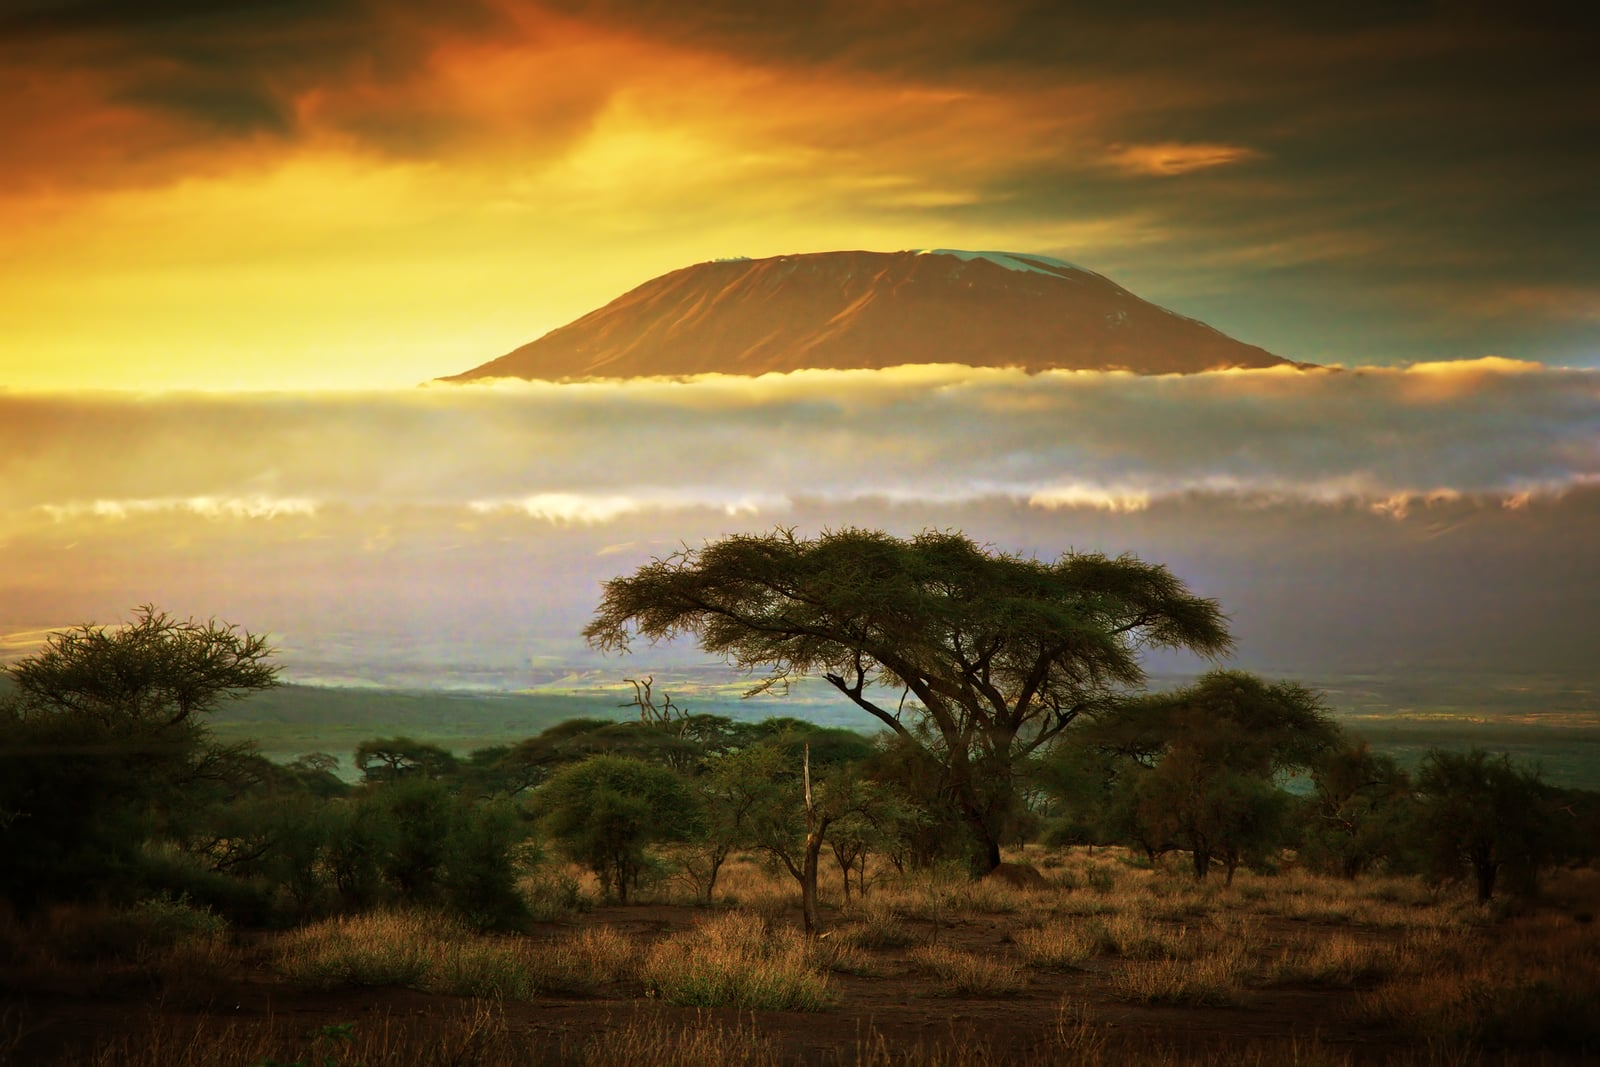 Sunset on the Mount Kilimanjaro, Tanzania